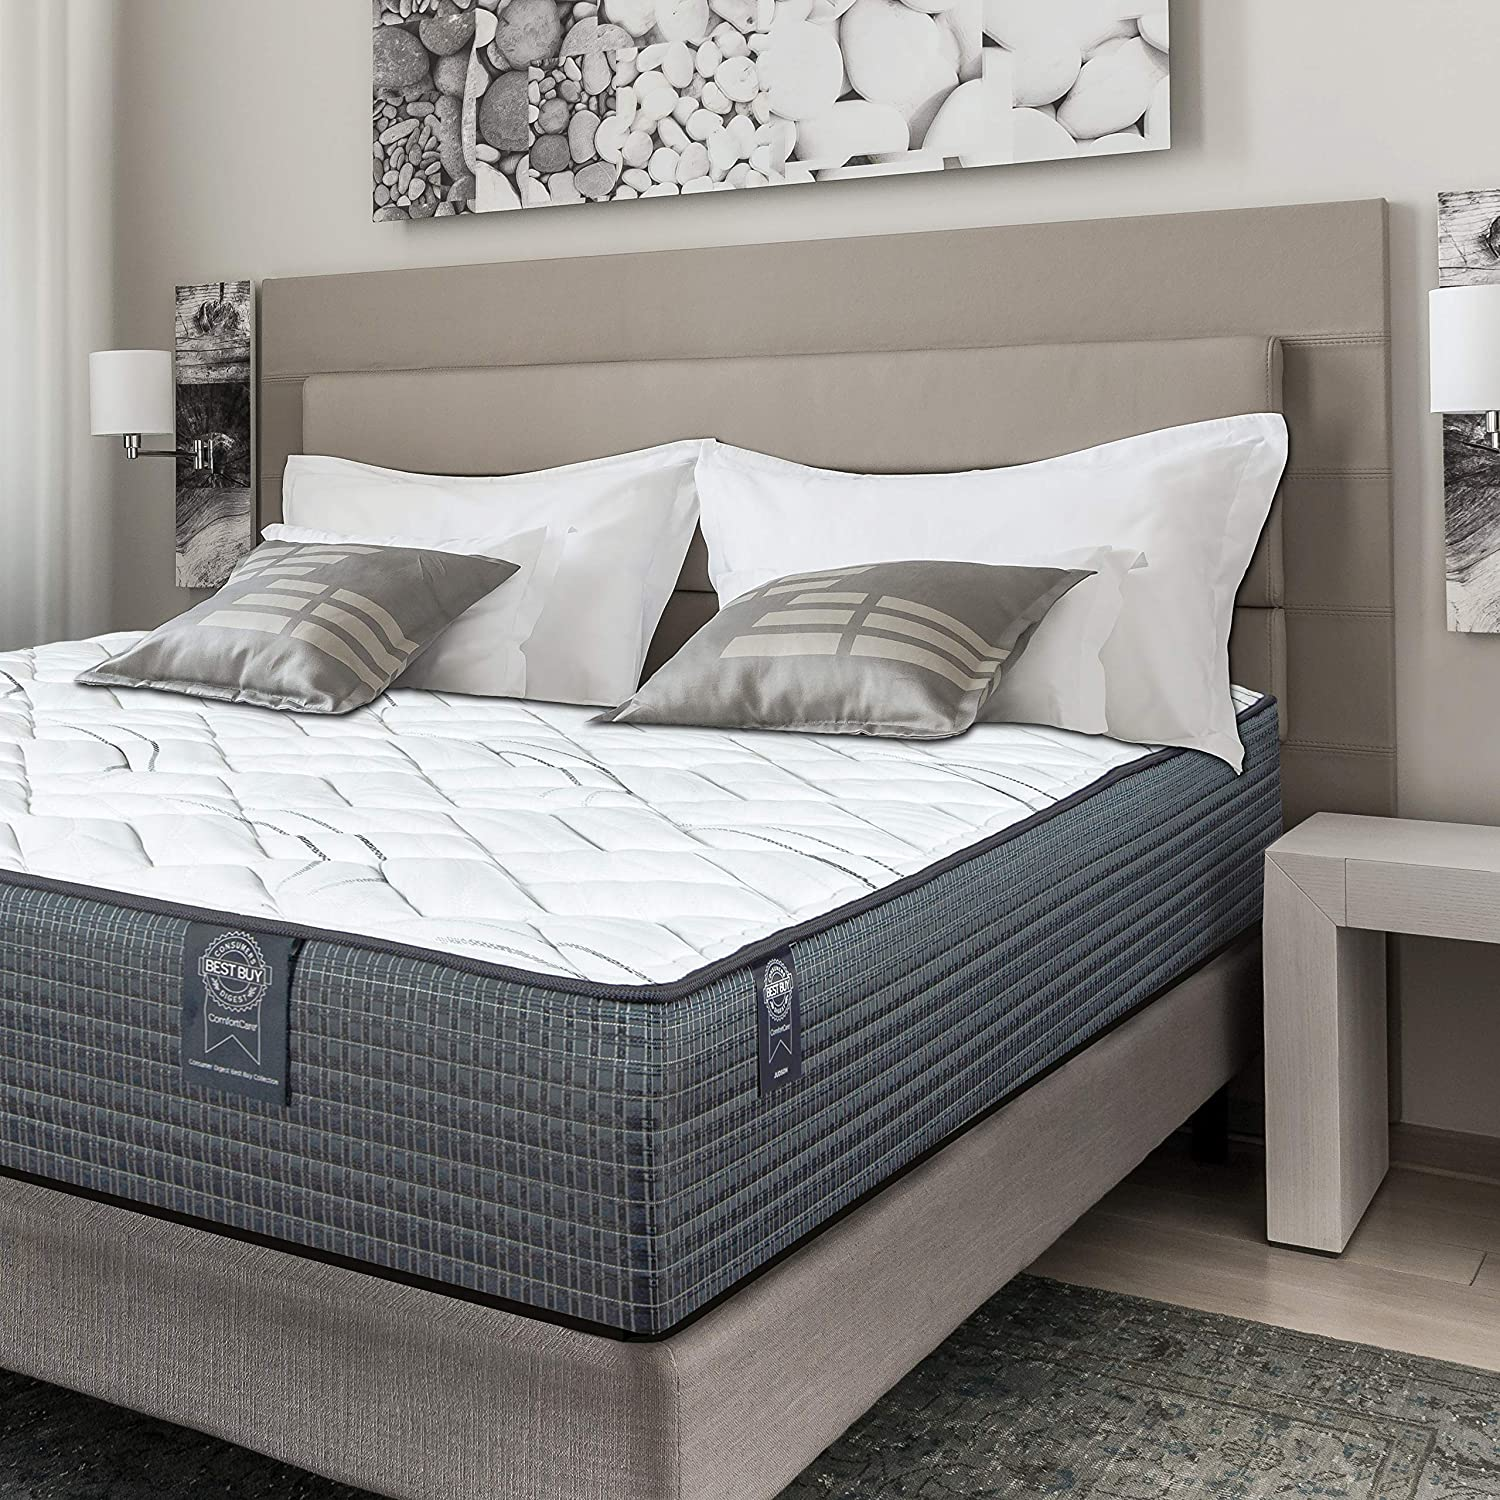 Comfort Care by Restonic Magnolia depot II Firm Mattress Super beauty product restock quality top King Cal